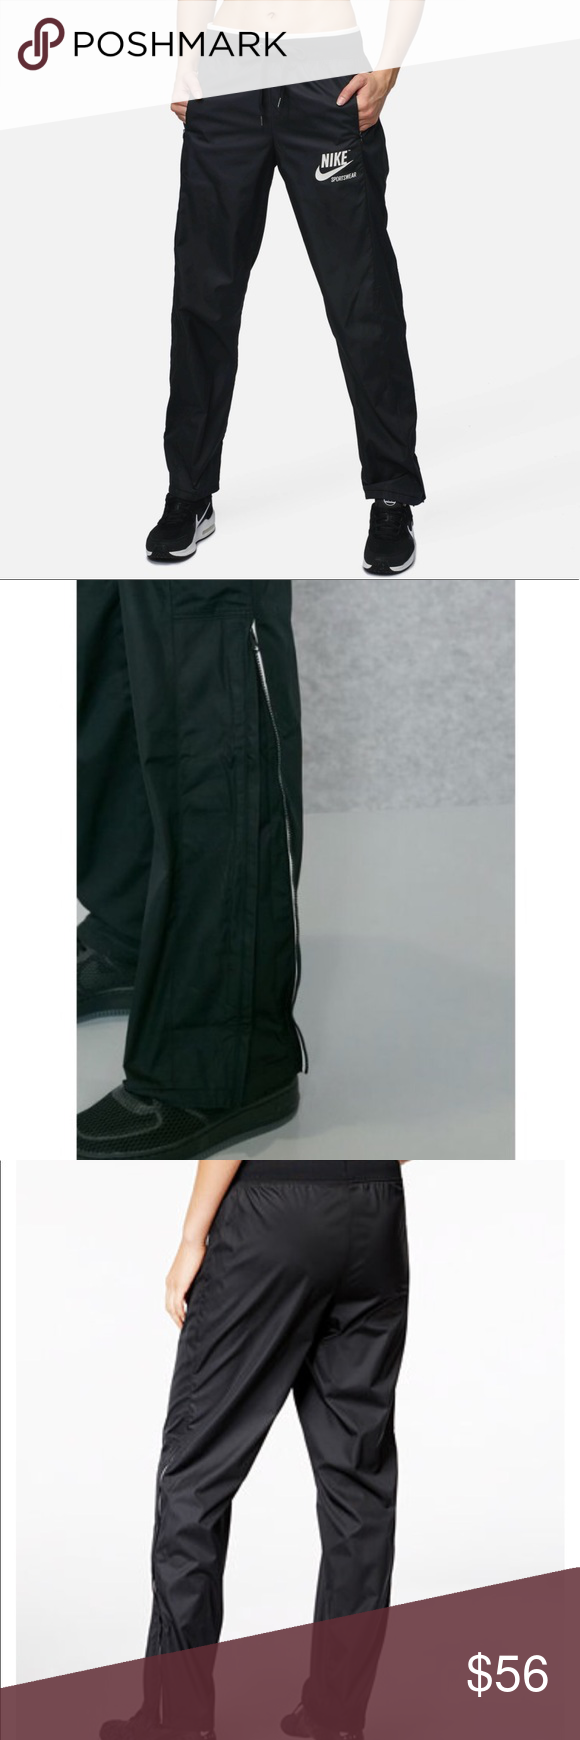 f43d110204ac Nike archive pants Nike sportswear archive track pants. New with tags.  70  retail.